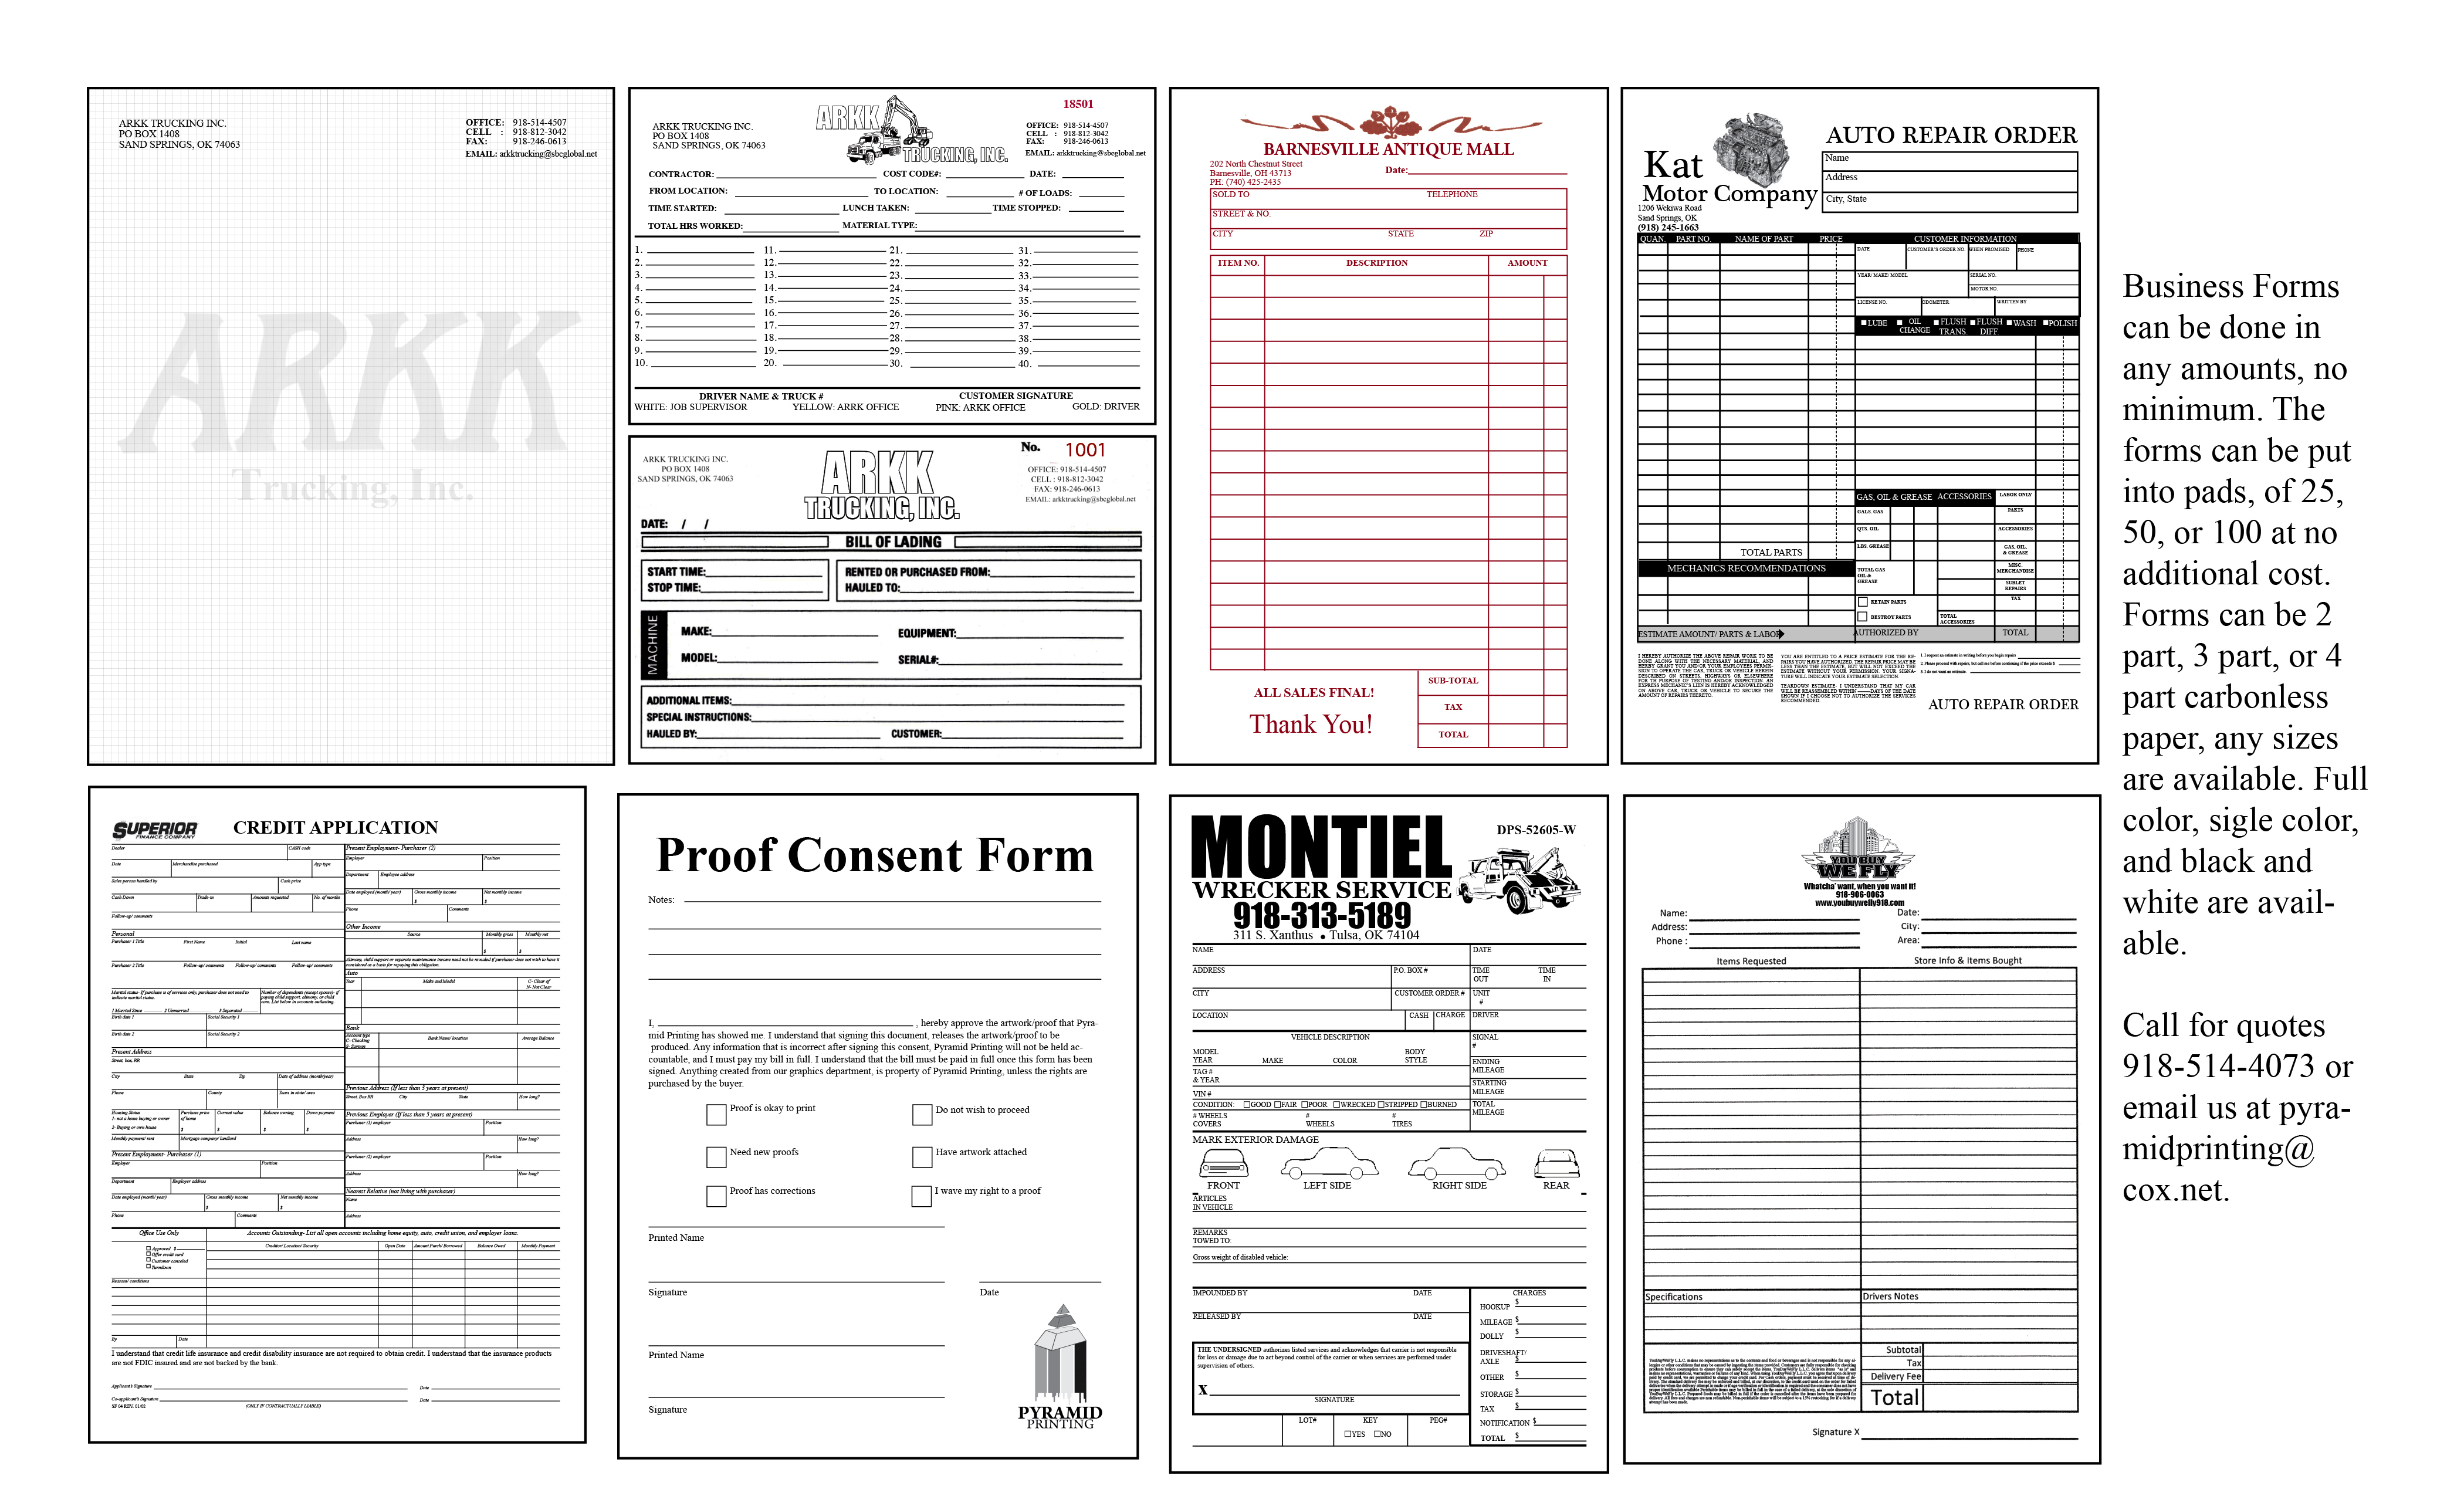 005 Free Business Forms Templates Template Ideas Printable Best Of - Free Printable Business Forms